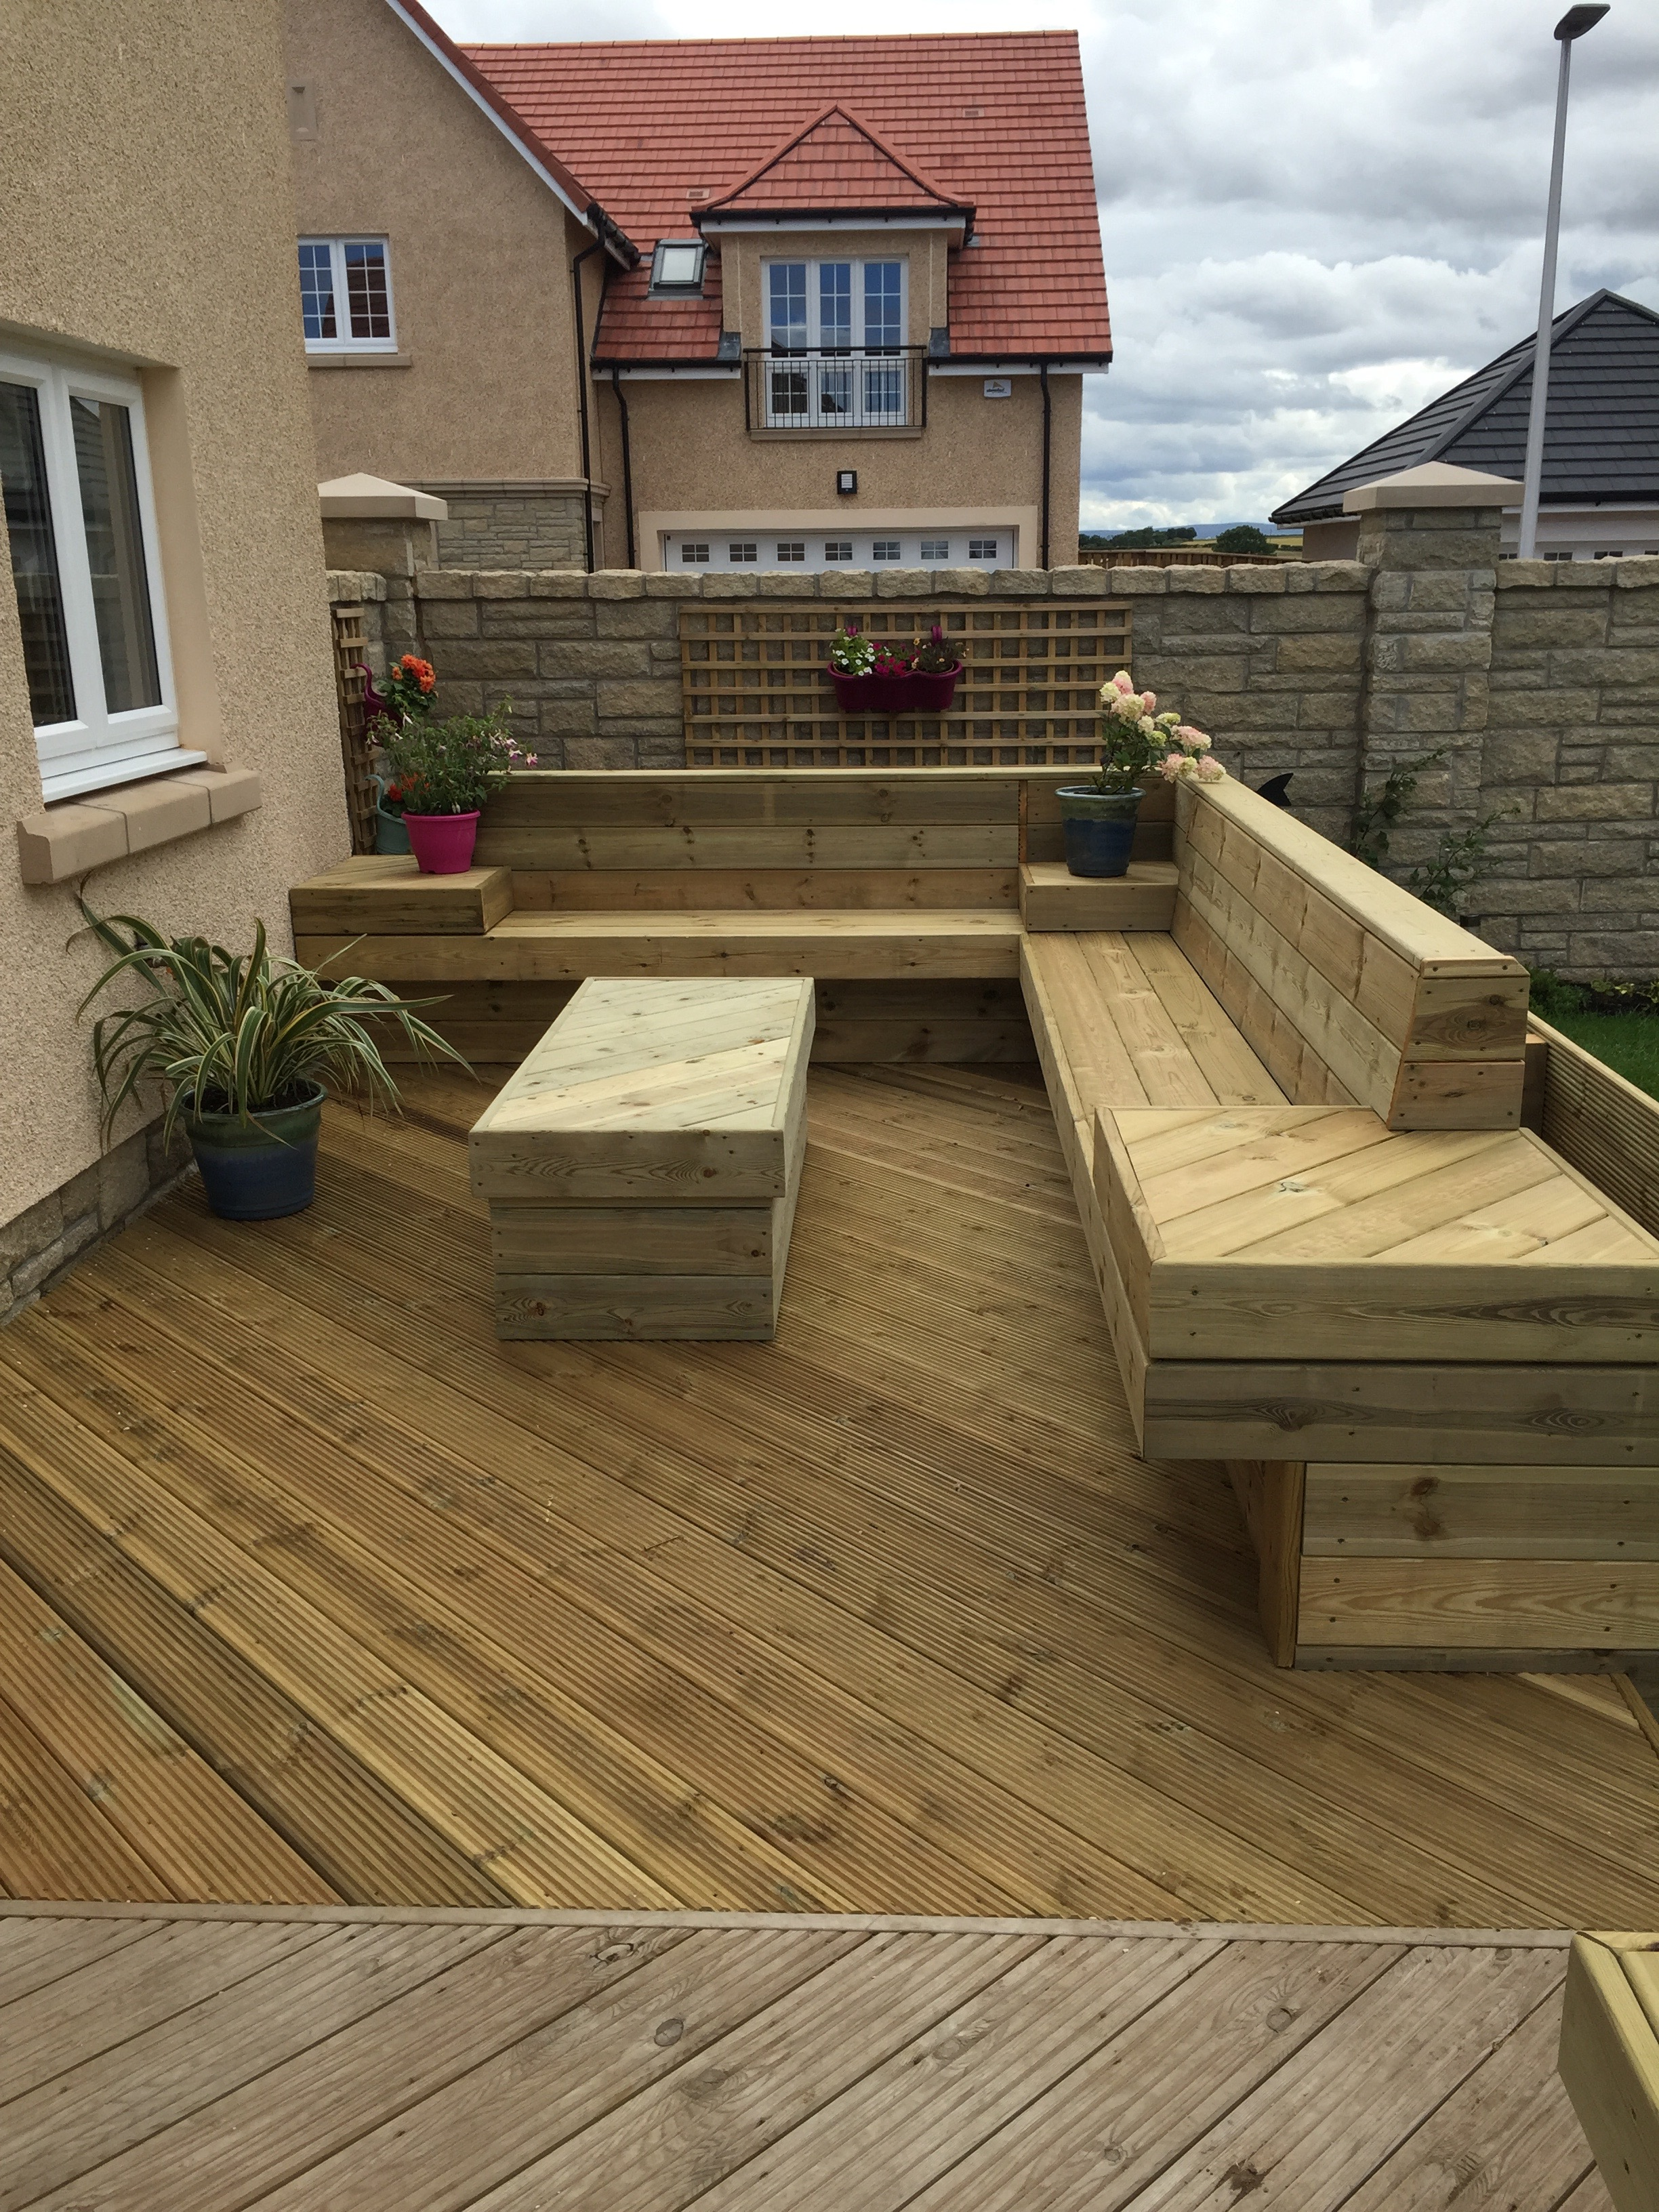 wooden_decking_with_seating.jpg